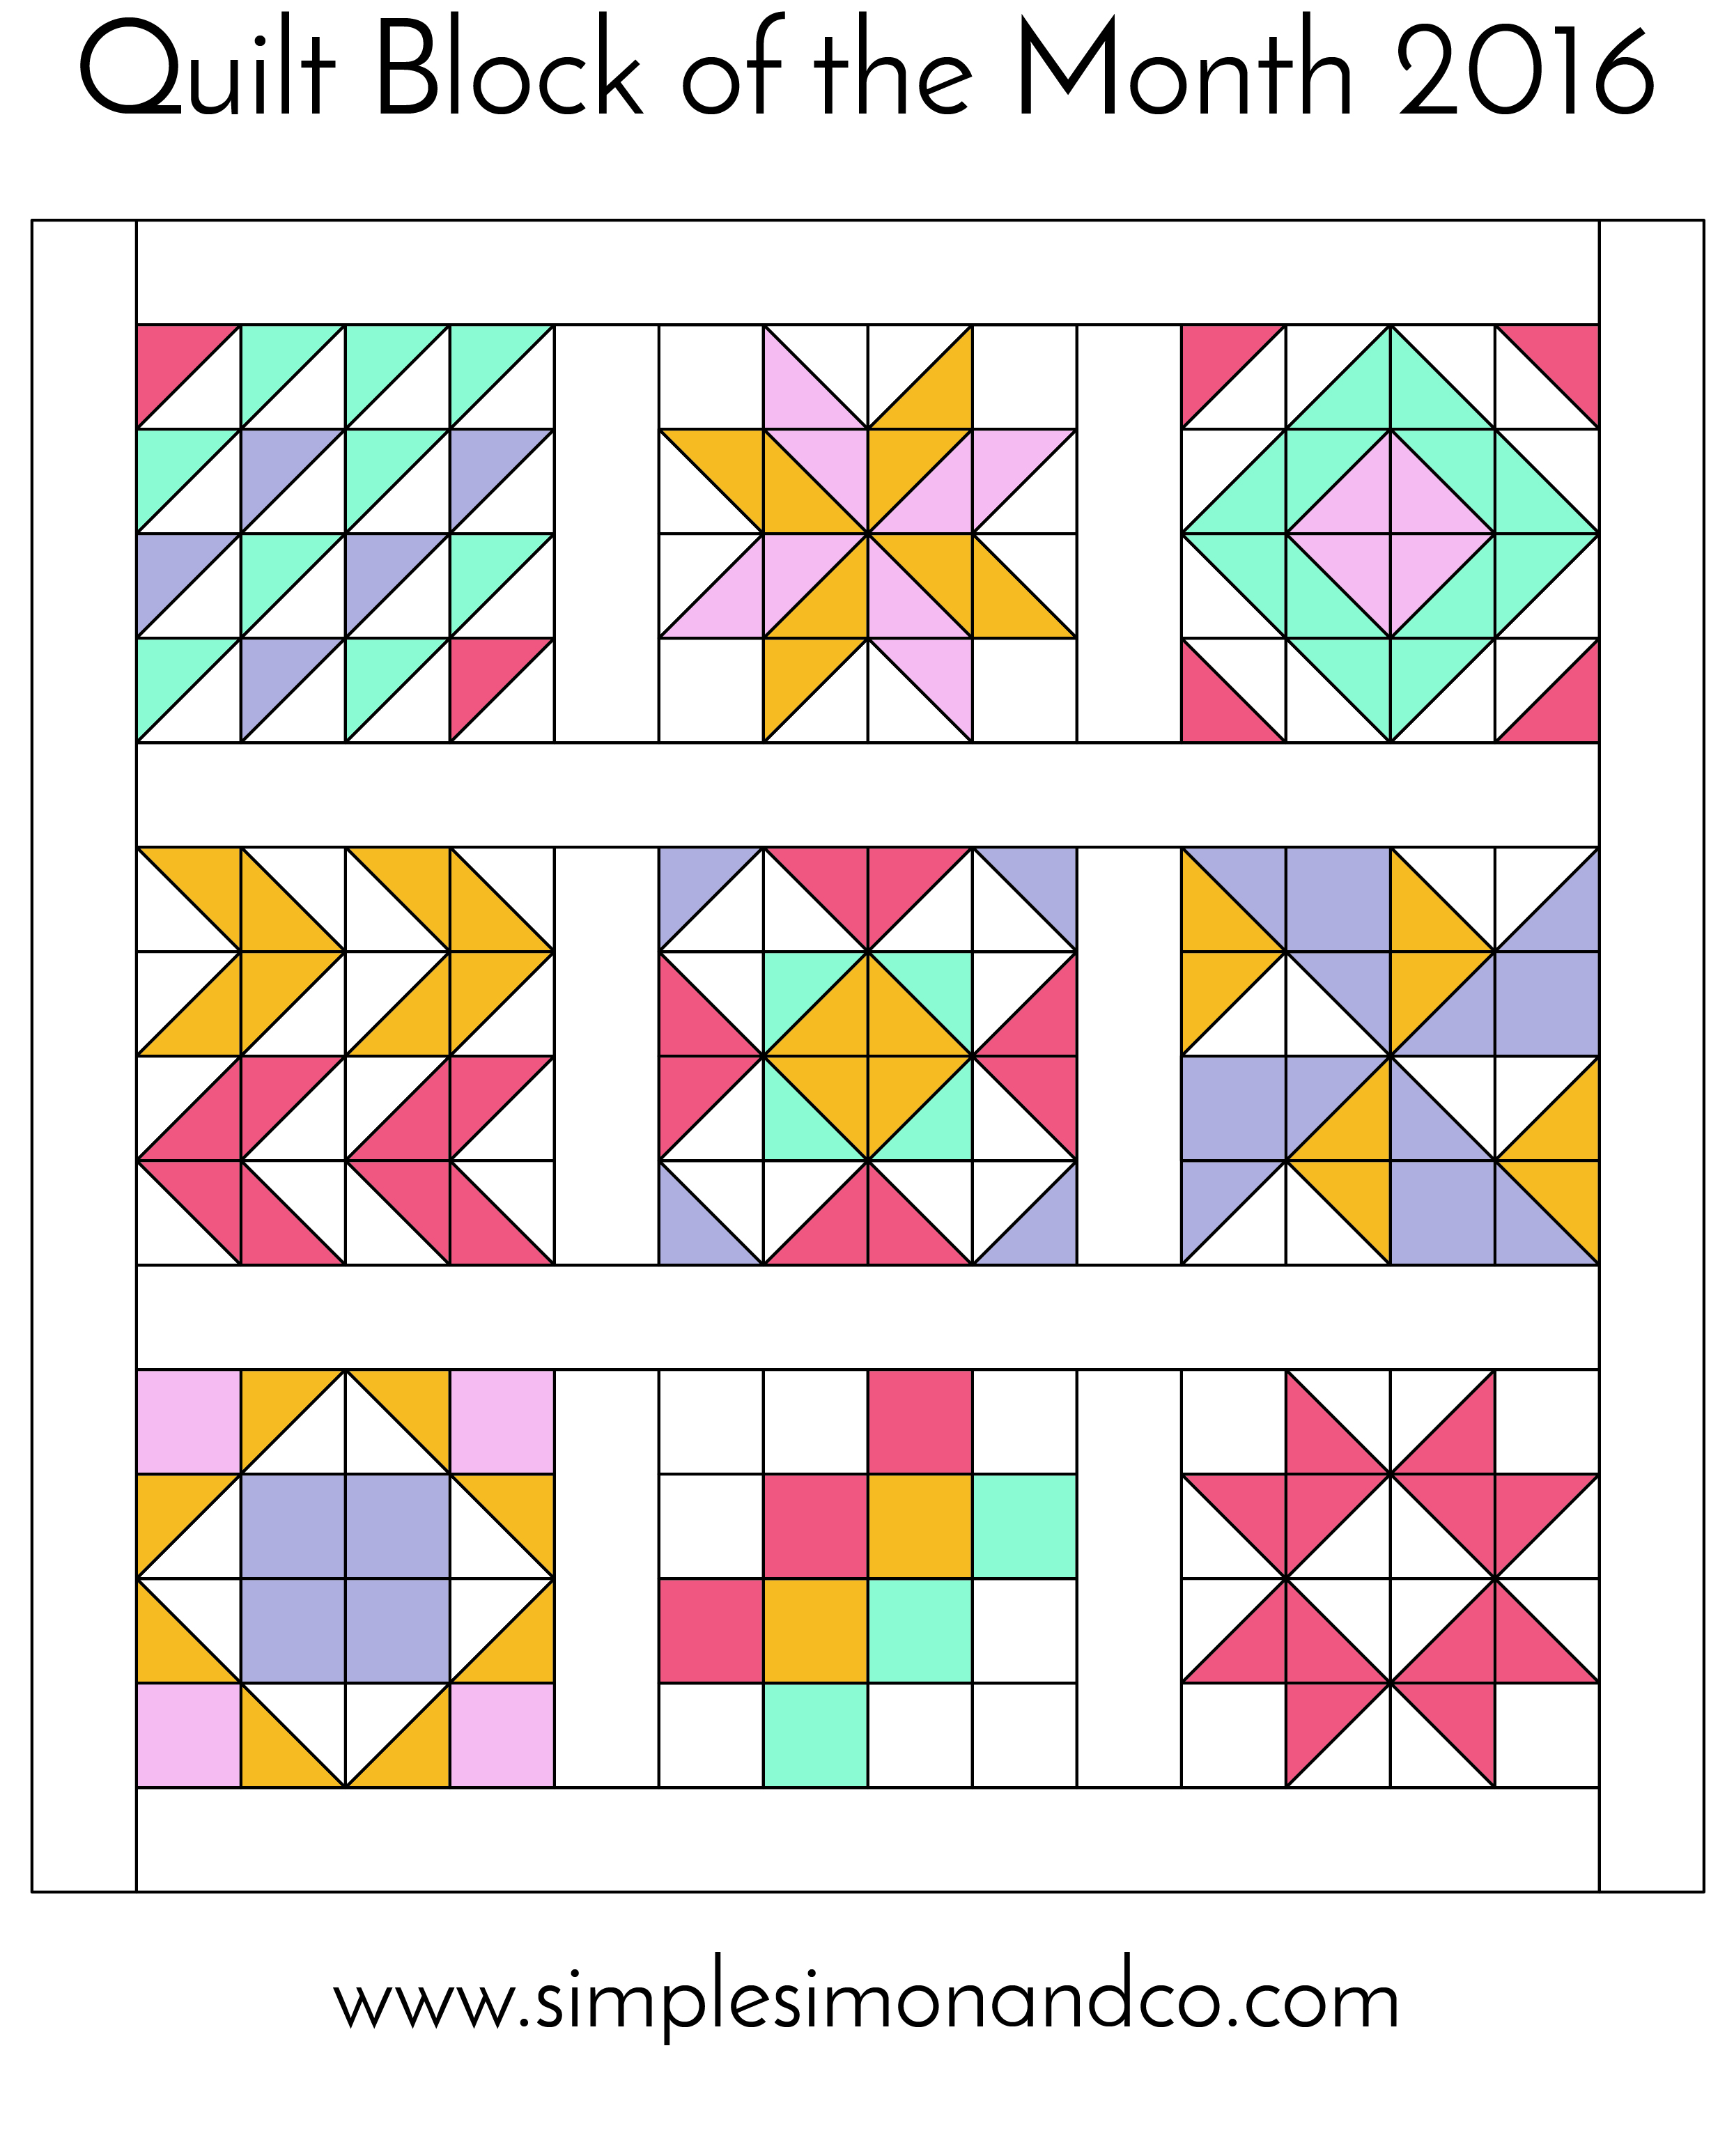 Quilt Block of the Month 2016